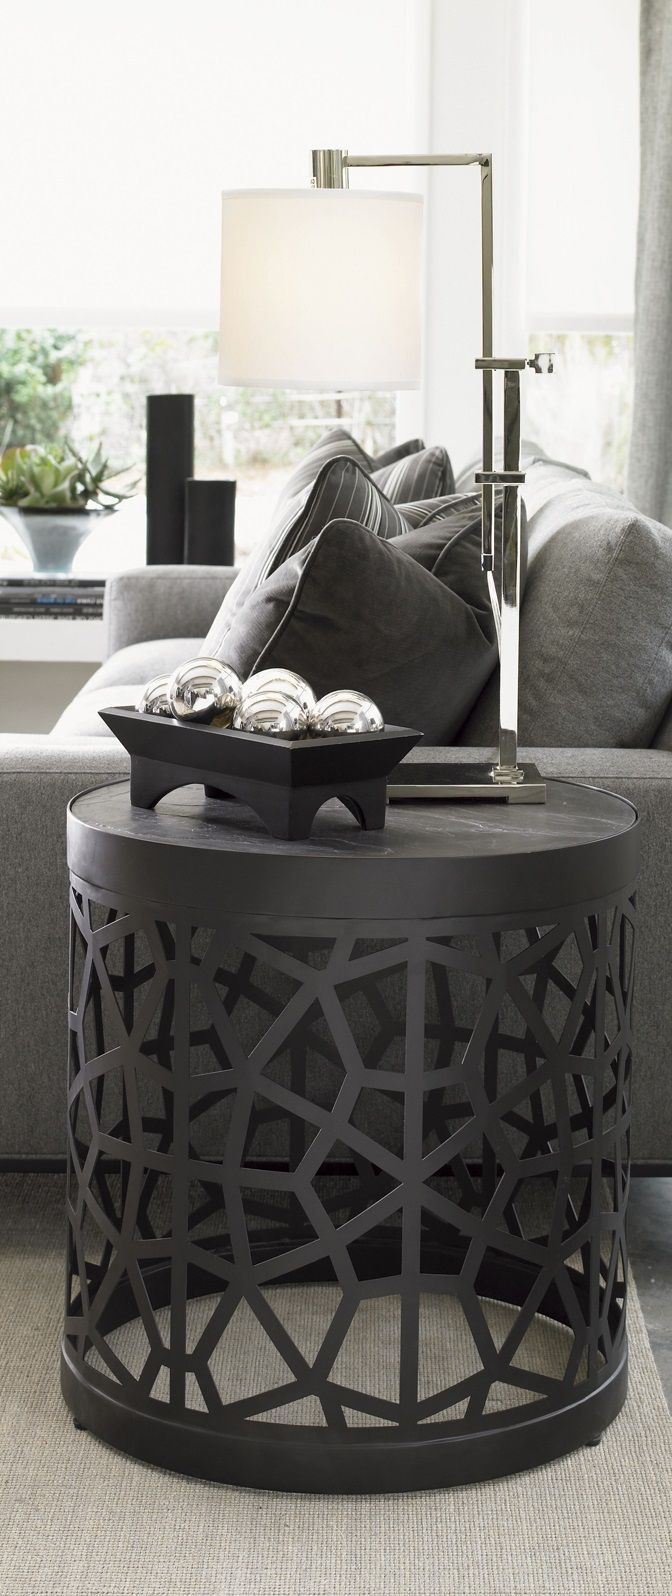 Side Tables Accent End Interiordesign Casegoodsideas Moder Home Decor